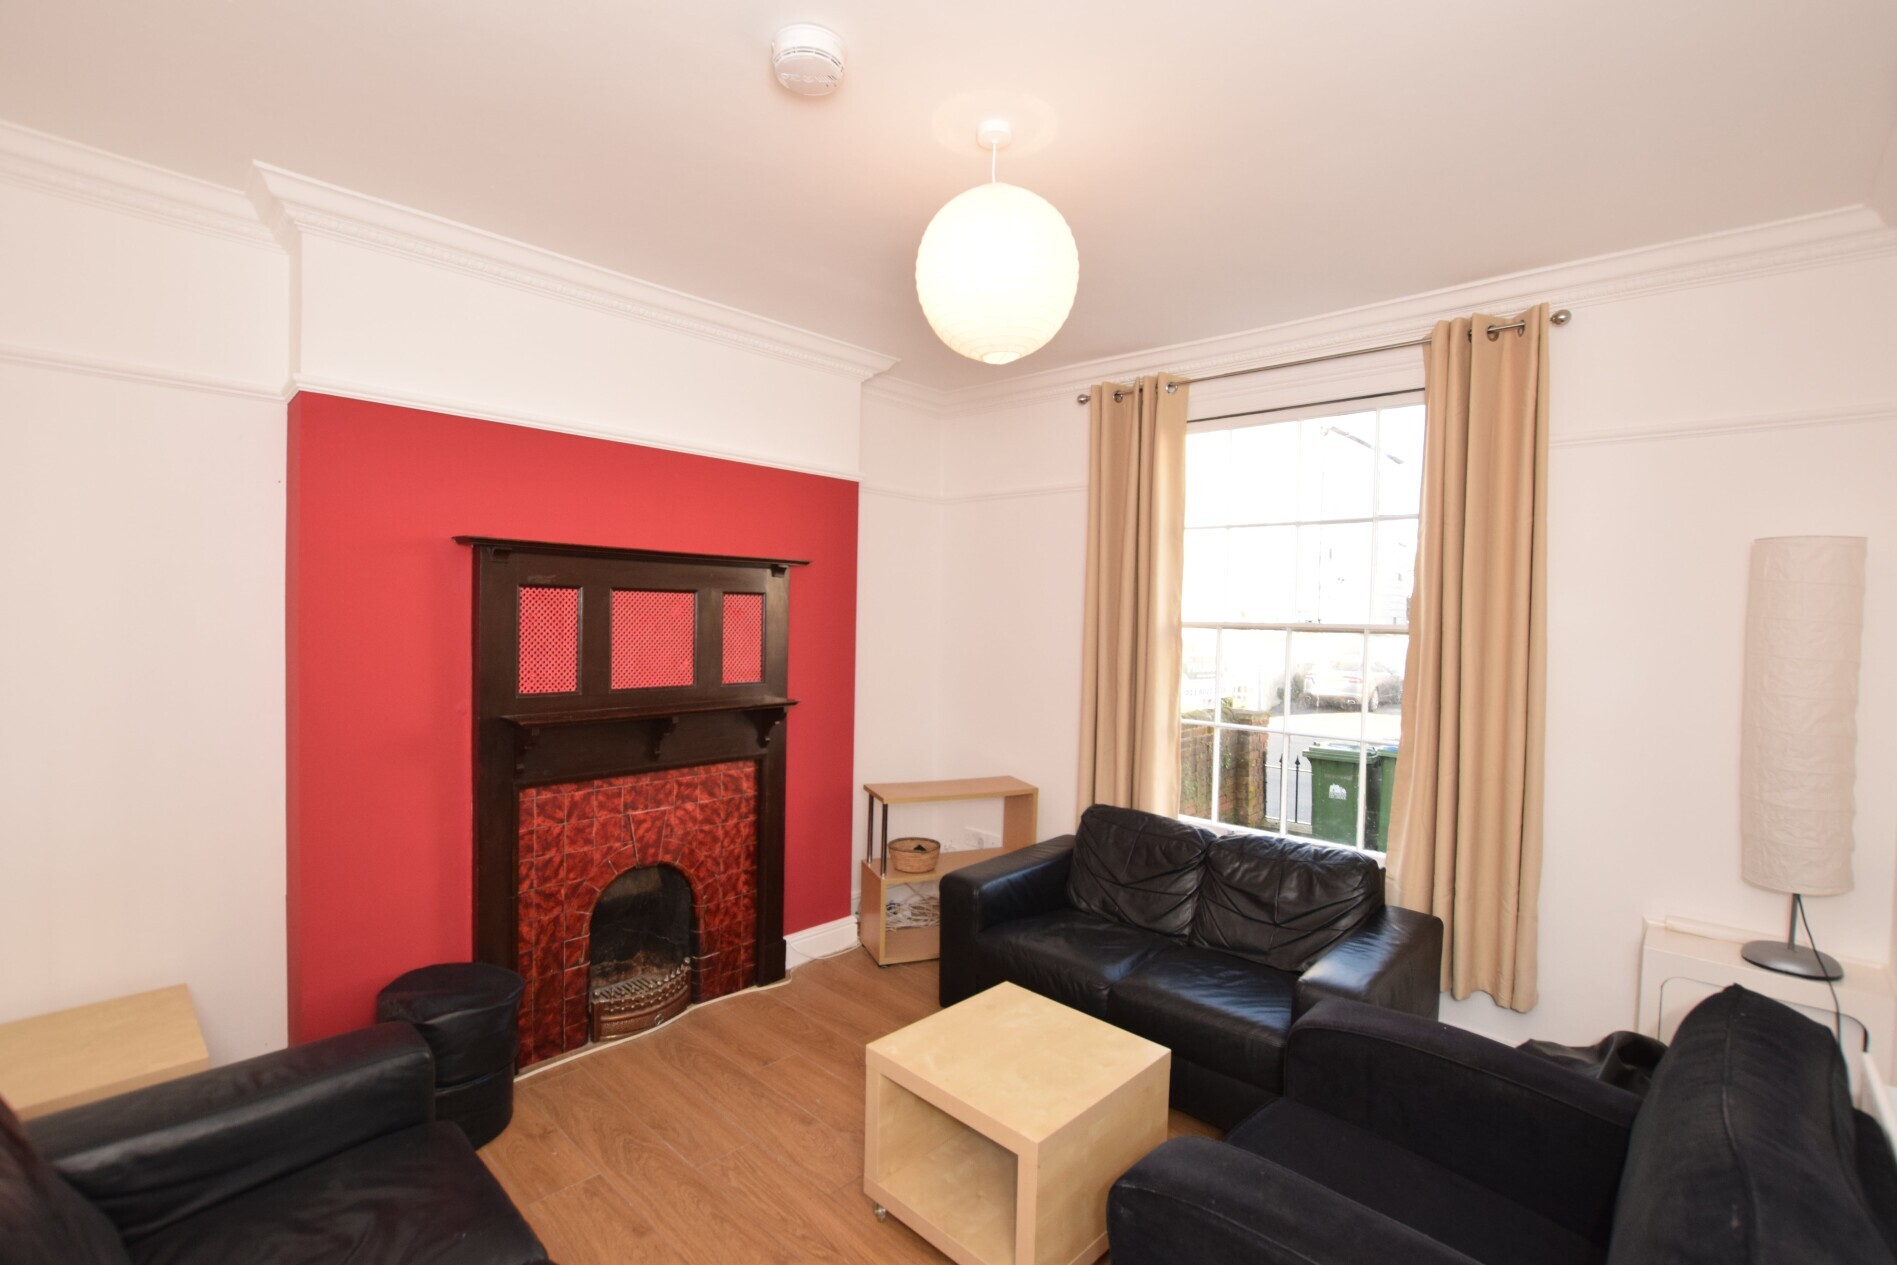 4 bedroom student house in The Polygon, Southampton